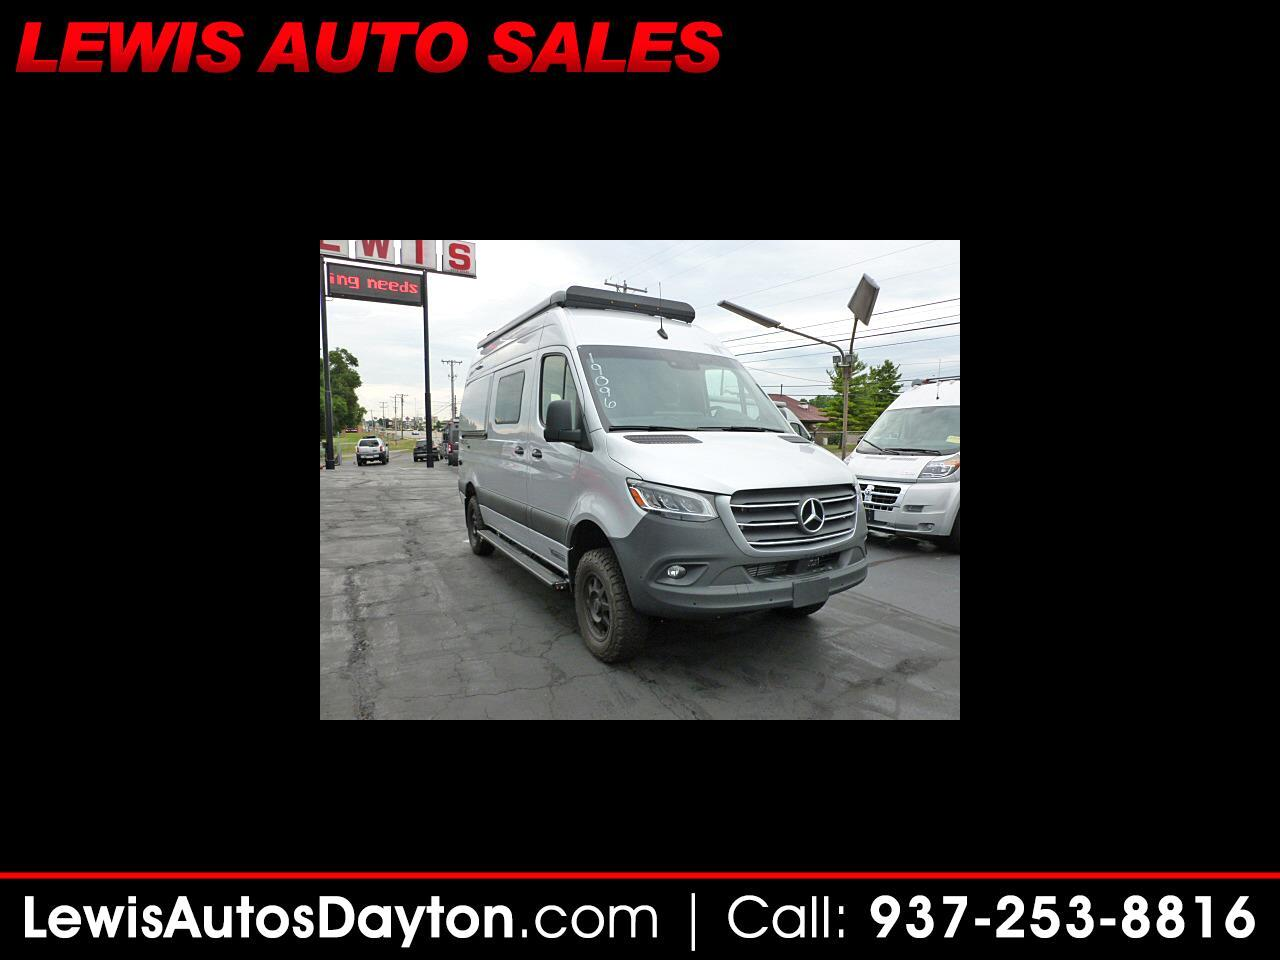 Lewis Auto Sales >> Used Cars Dayton Oh Used Cars Trucks Oh Lewis Auto Sales